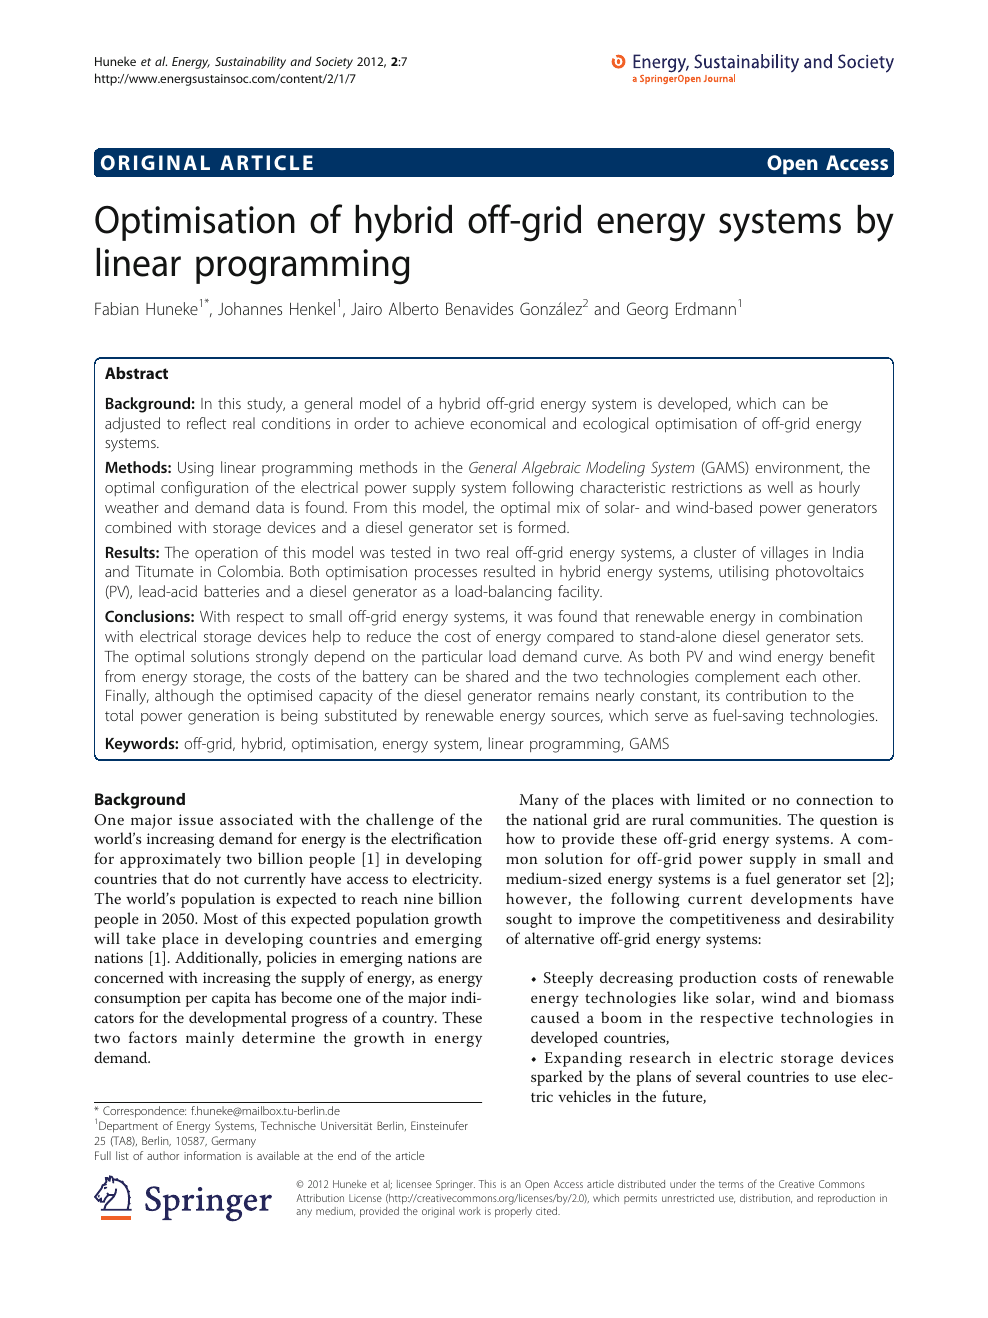 Optimisation of hybrid off-grid energy systems by linear